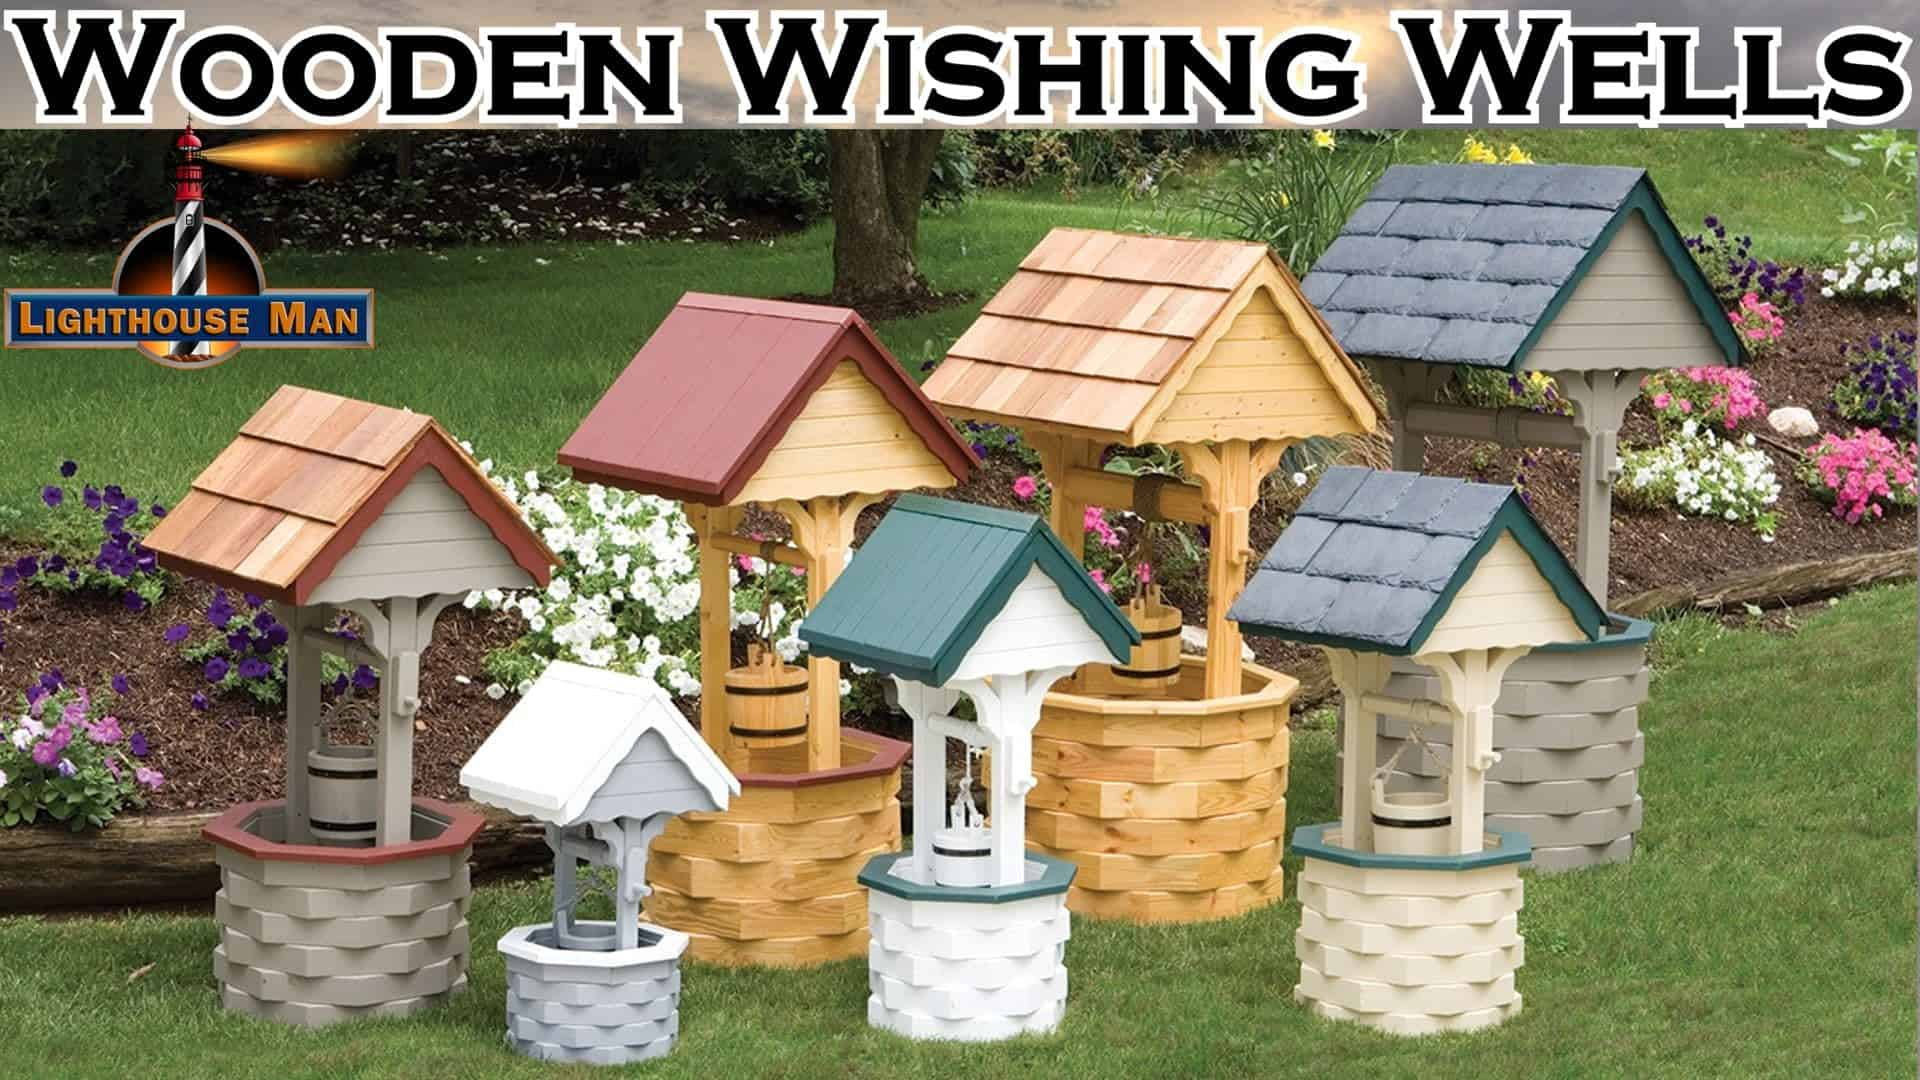 Decorative Ornamental Garden Wishing Wells - Wooden Wishing Wells